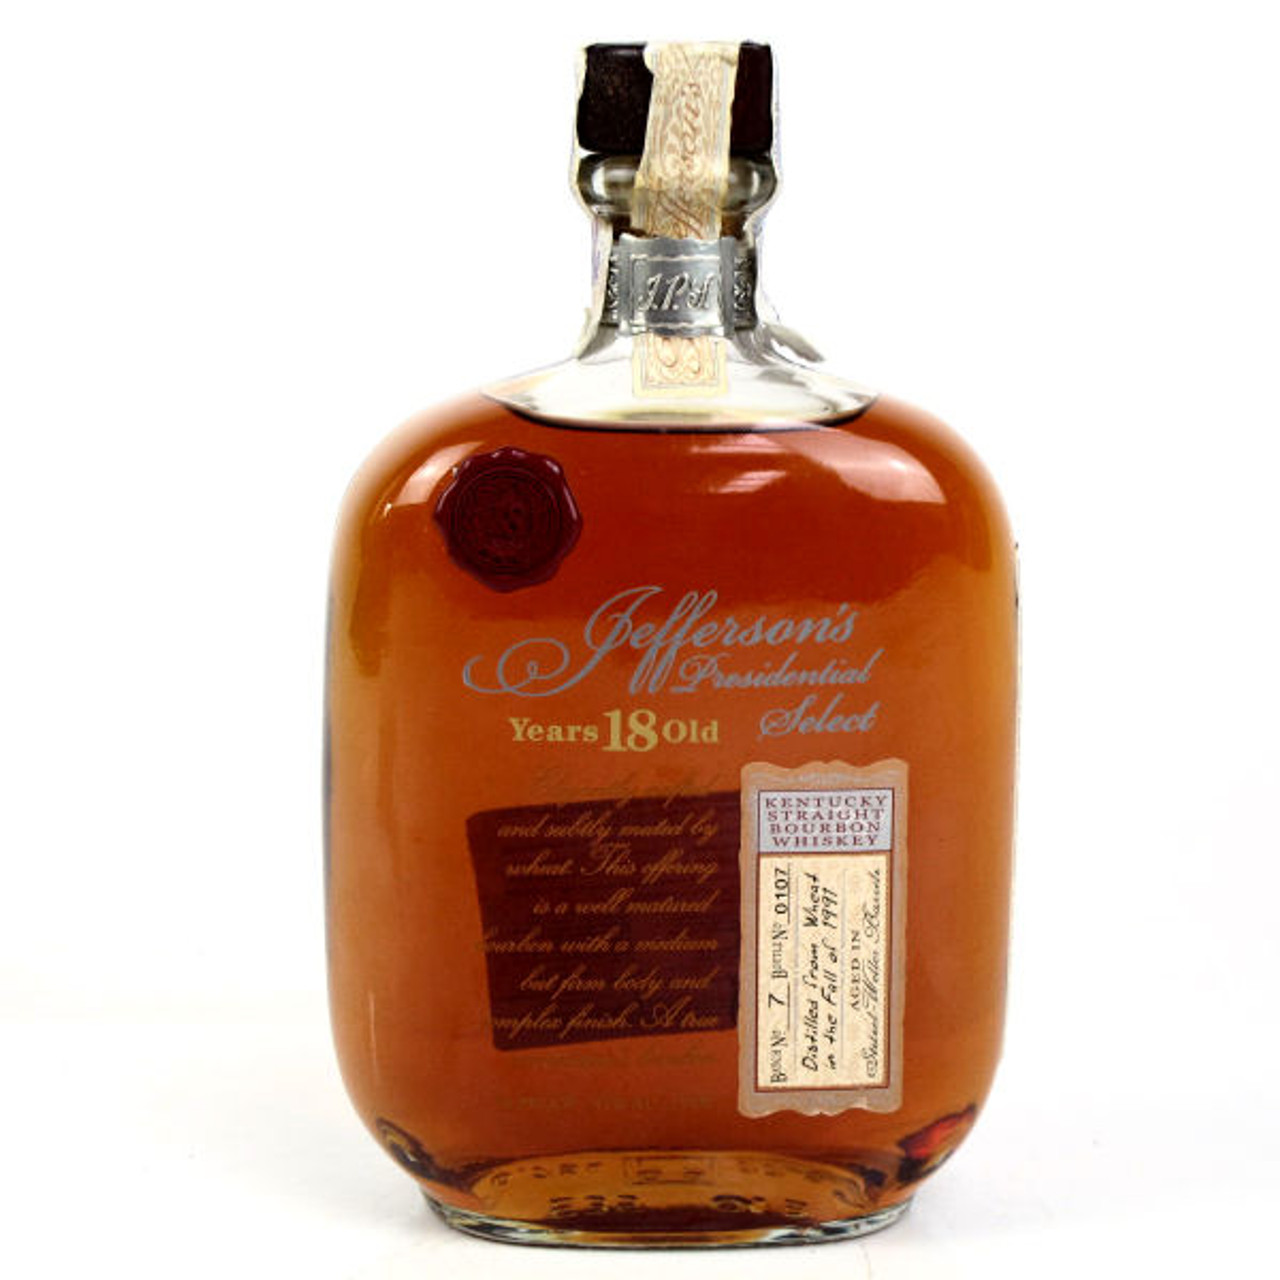 dfb819af4f3 jeffersons-presidential-select-18-year-old-bourbon  00075.1496359151.jpg c 2